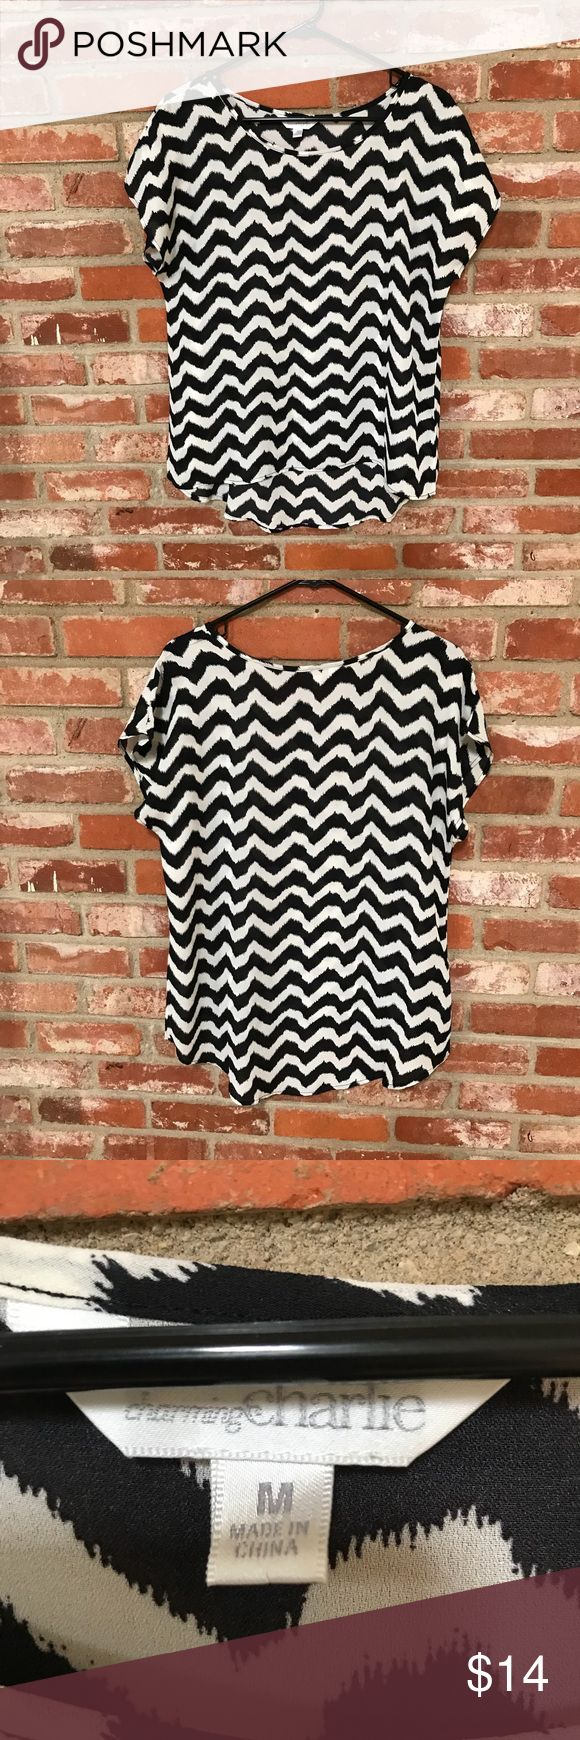 Charming Charlie black and white chevron top (69) Worn and washed once! Excellent condition black and white chevron hi-low blouse. Size medium  21 inches armpit to armpit  24 inches long in the front  29 inches long in the back I accept reasonable offers! Bundle multiple items for a private offer 💜 Charming Charlie Tops Blouses